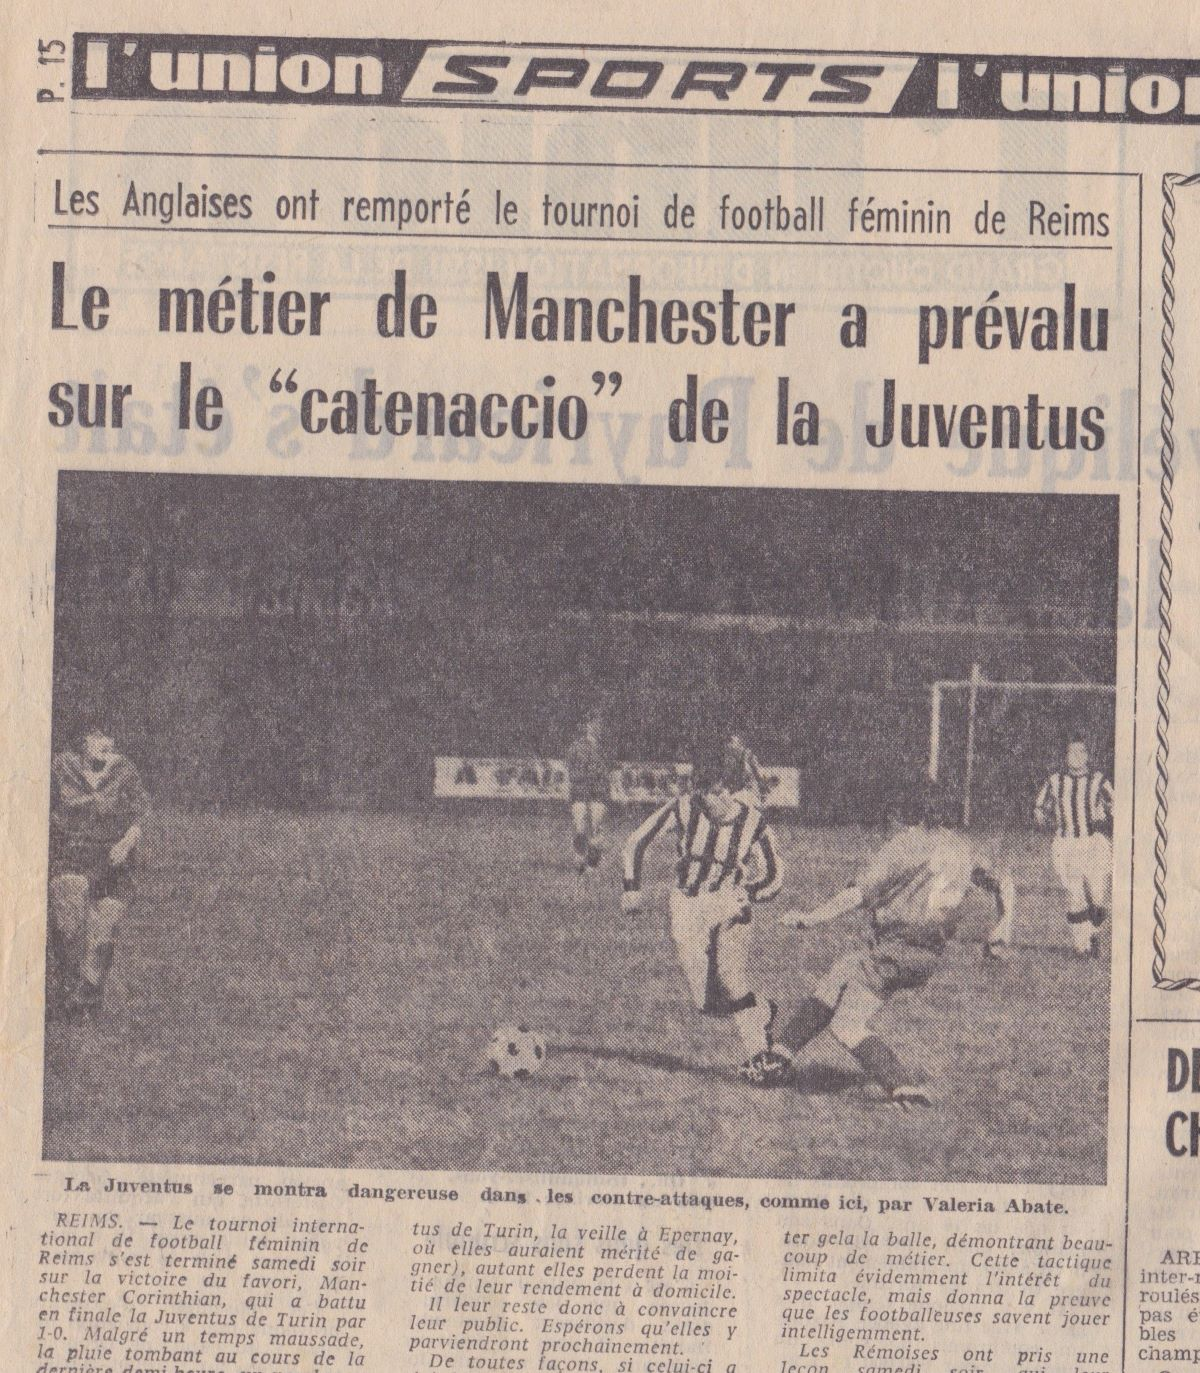 Newspaper coverage of the Reims final in 1970